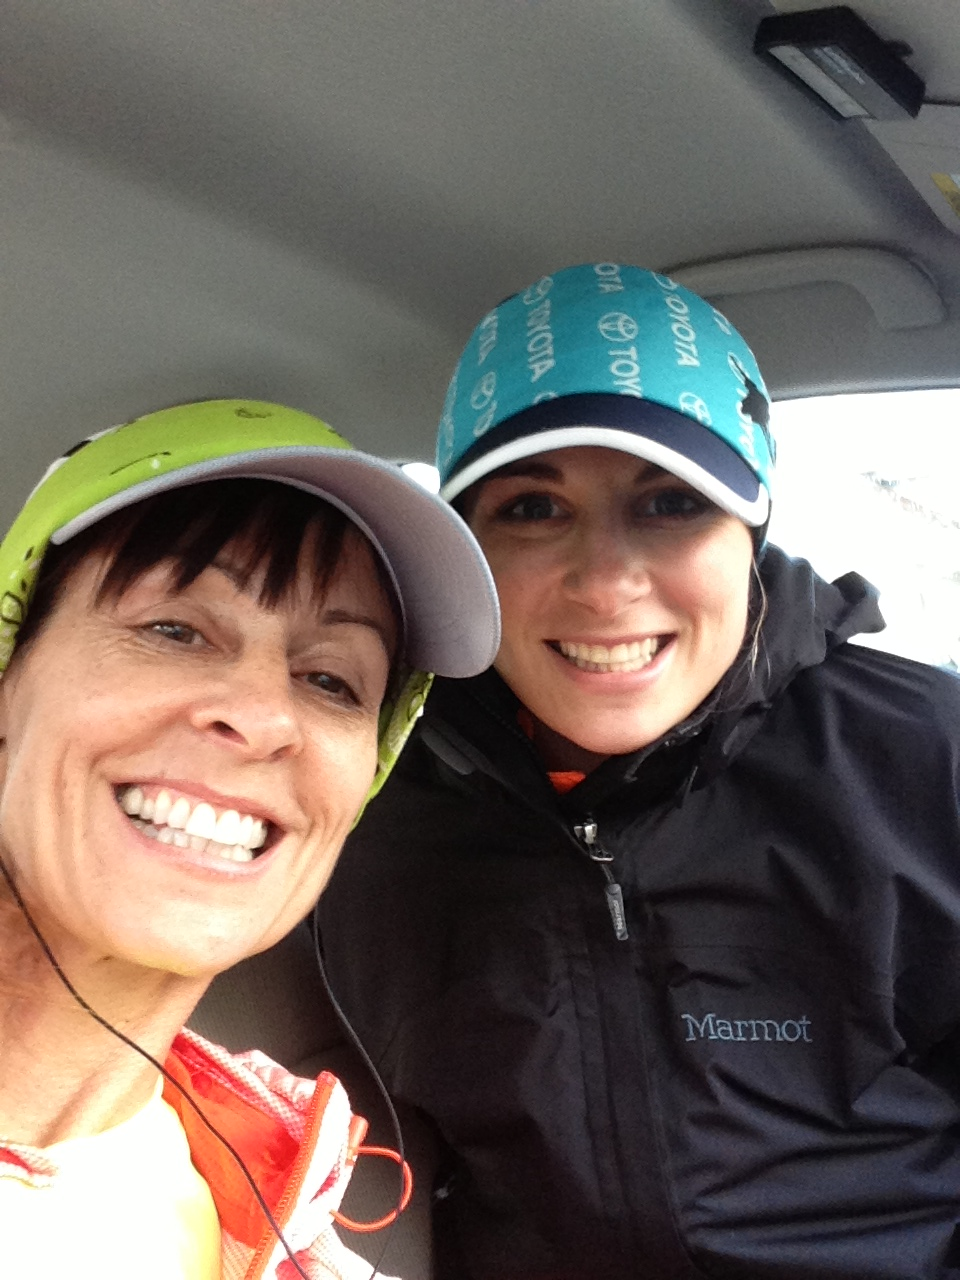 Here we are sitting in the car 50 feet from the start, staying warm and dry before the race